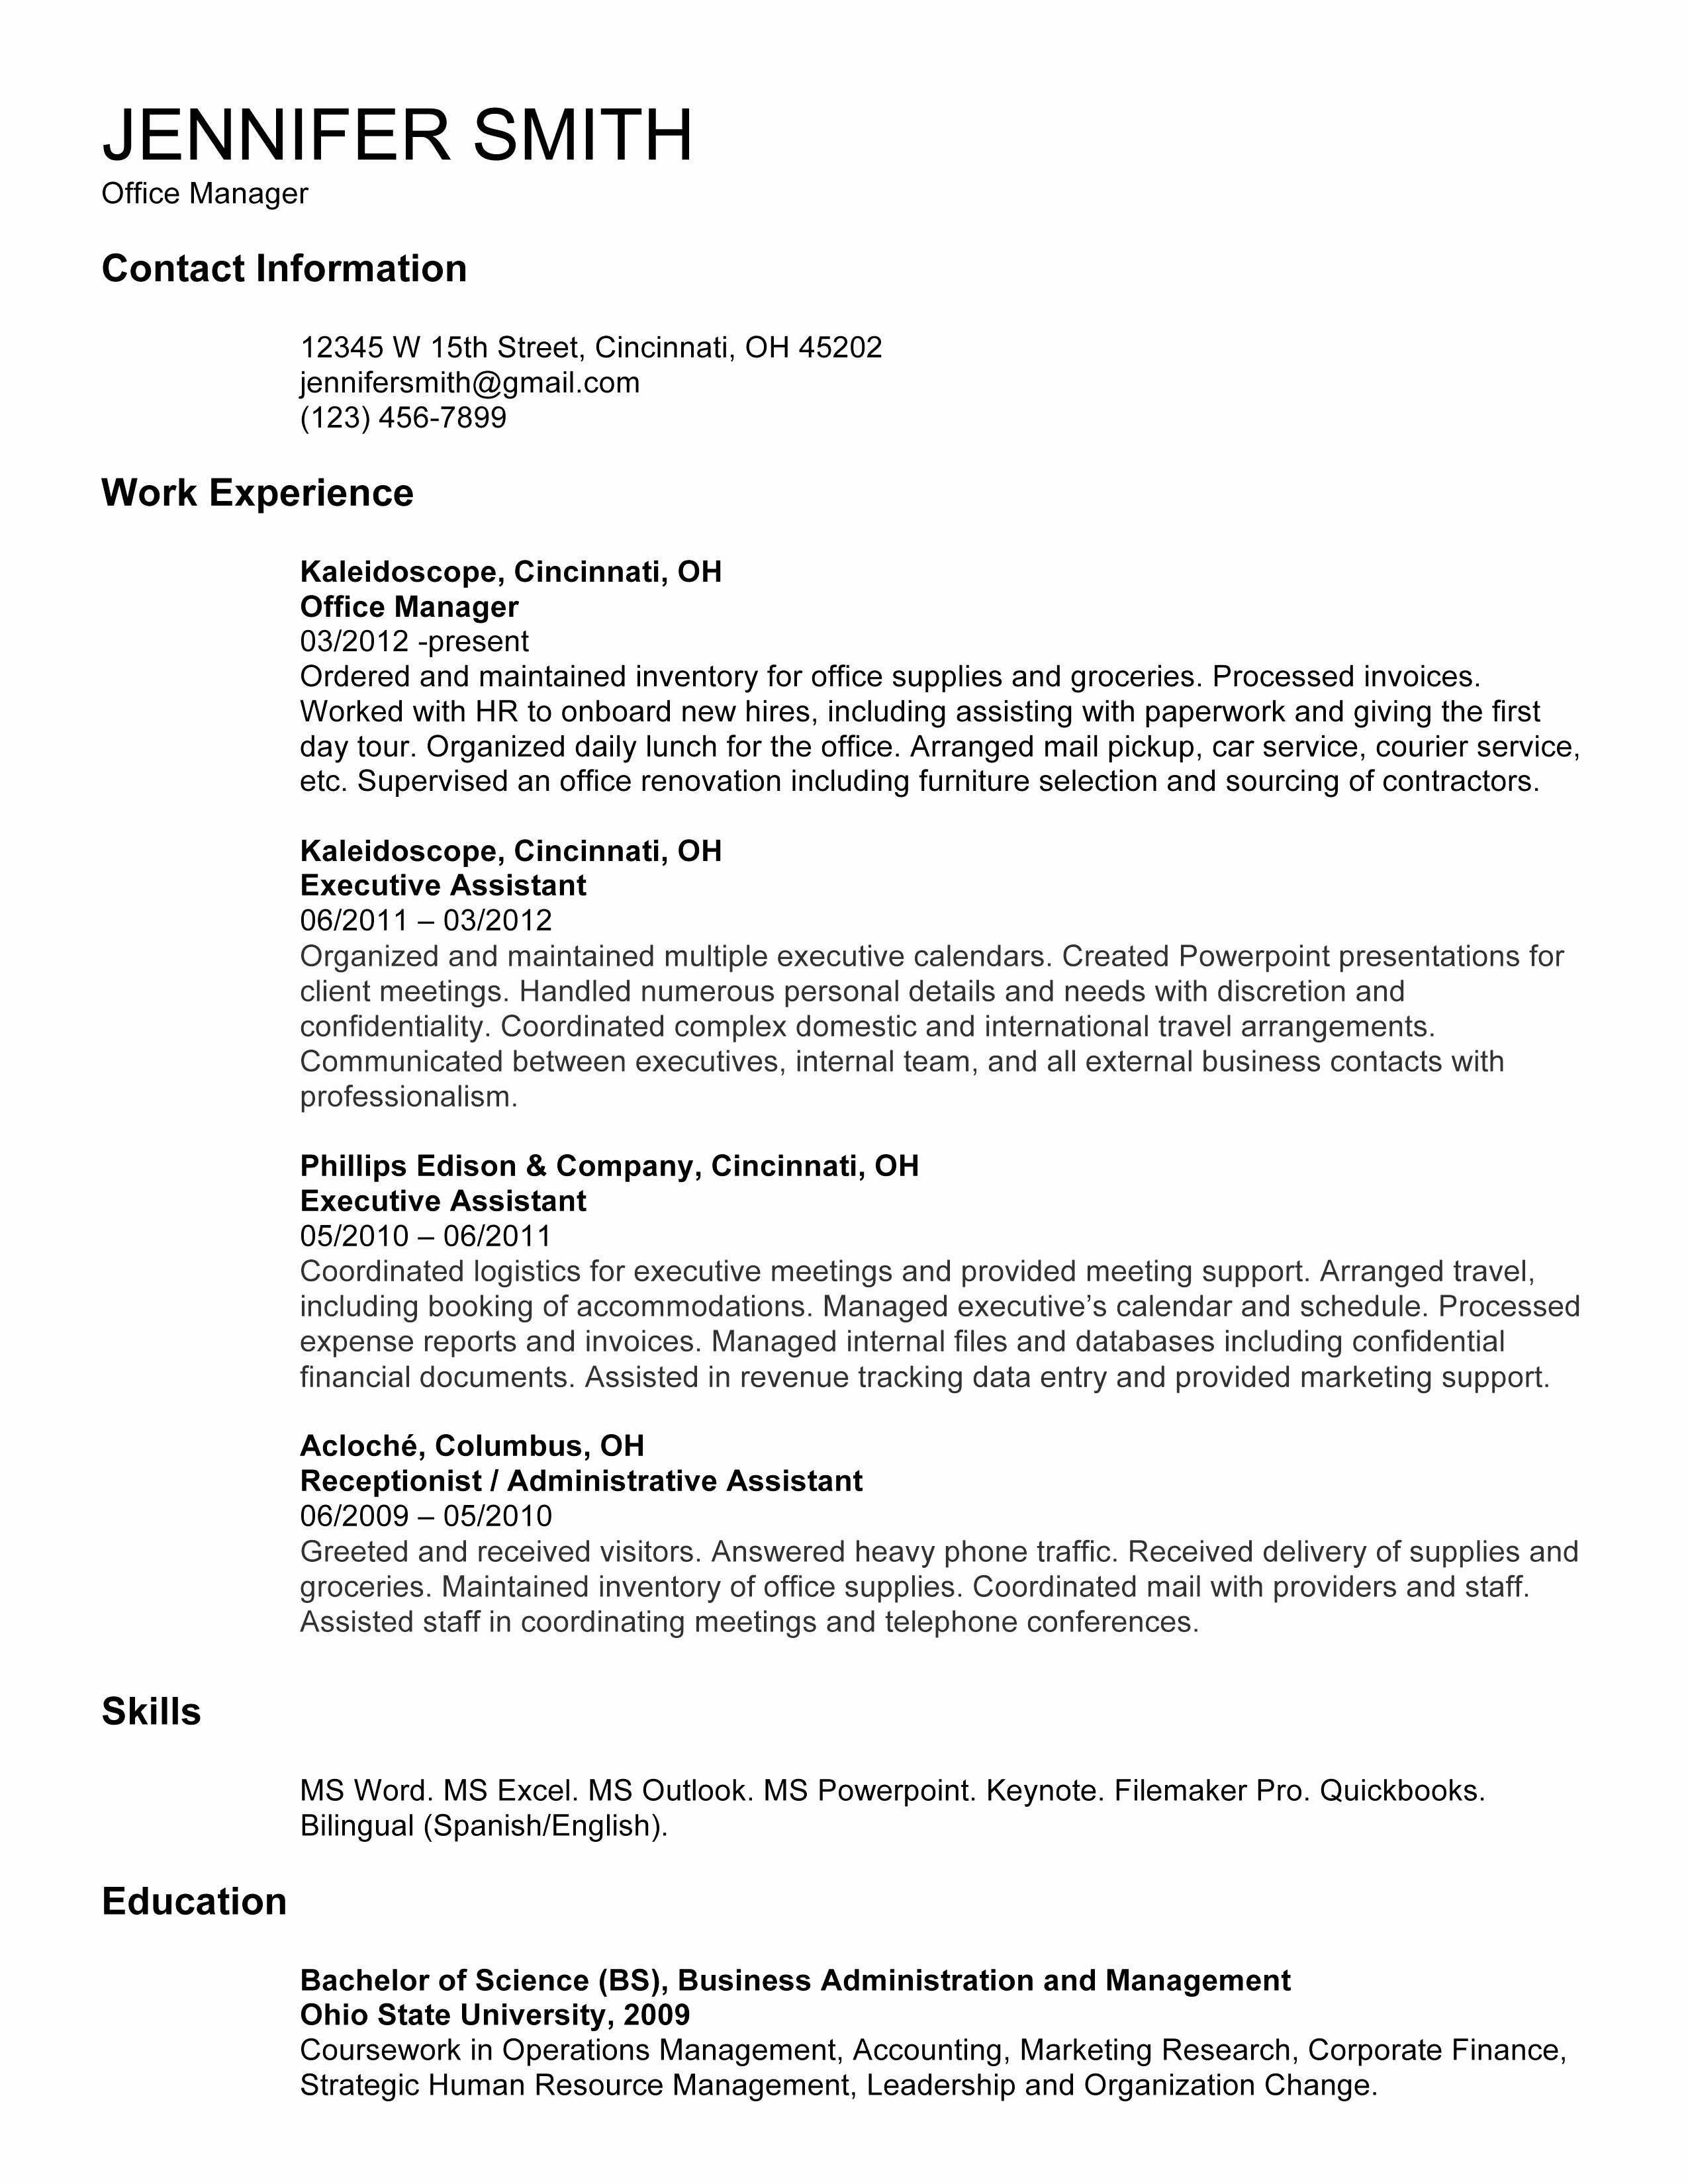 Resume for Marketing Job - How to Make A Resume for A Receptionist Job Valid Fresh Reception